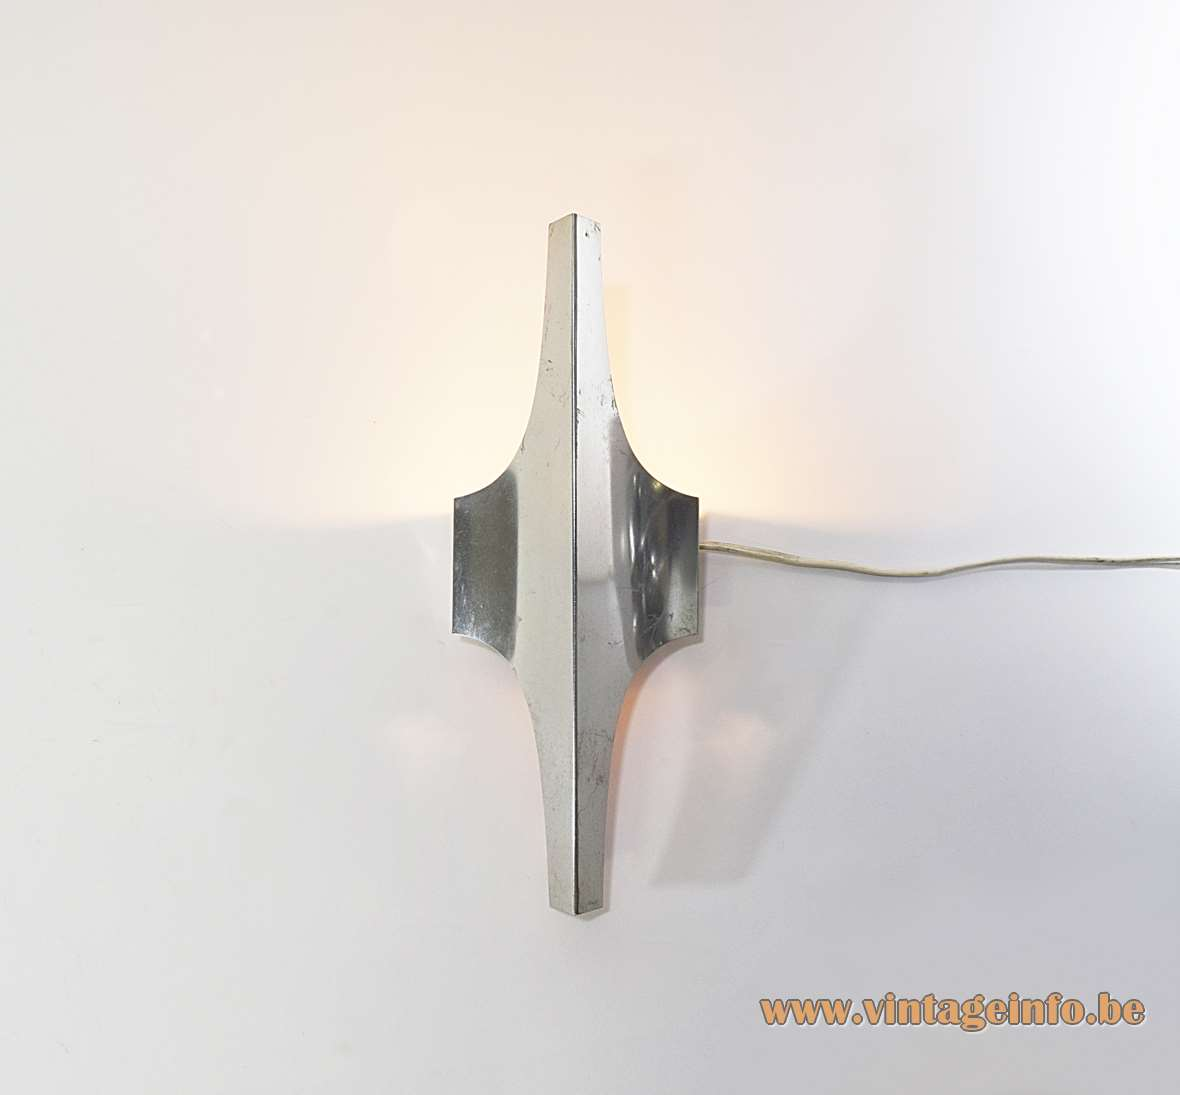 DORIA aluminium wall lamp elongated spiky metal lampshade E14 lamp socket Doria Leuchten Germany 1960s 1970s